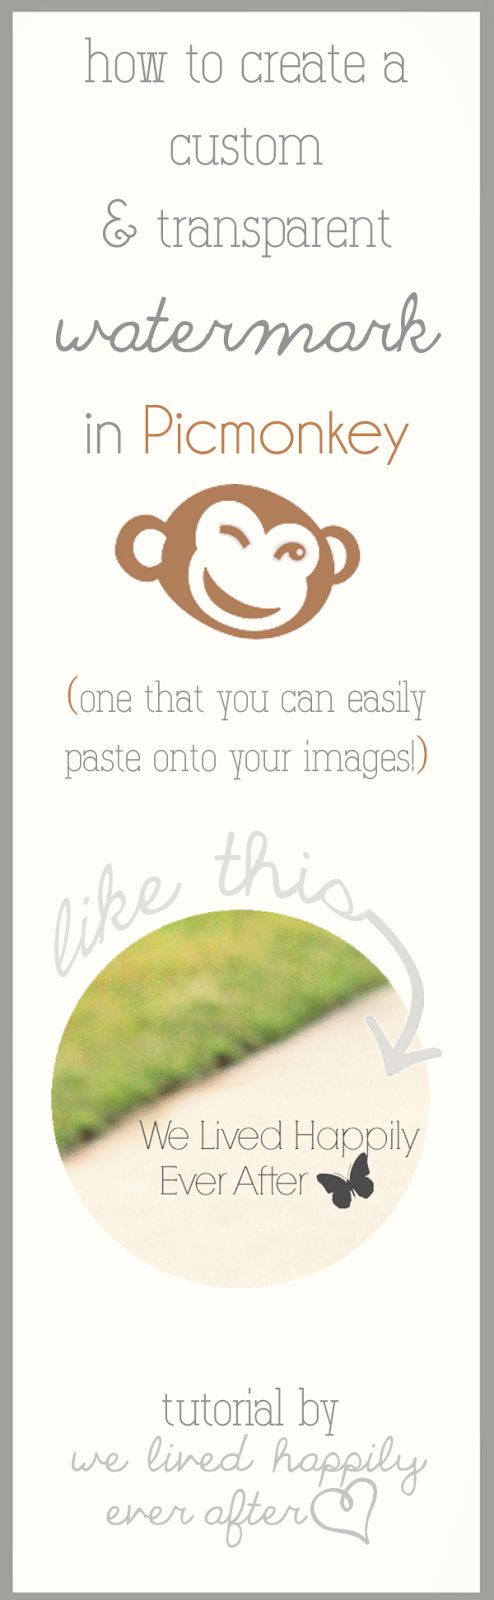 We Lived Happily Ever After: Use Picmonkey to make your own transparent, pasteable watermark